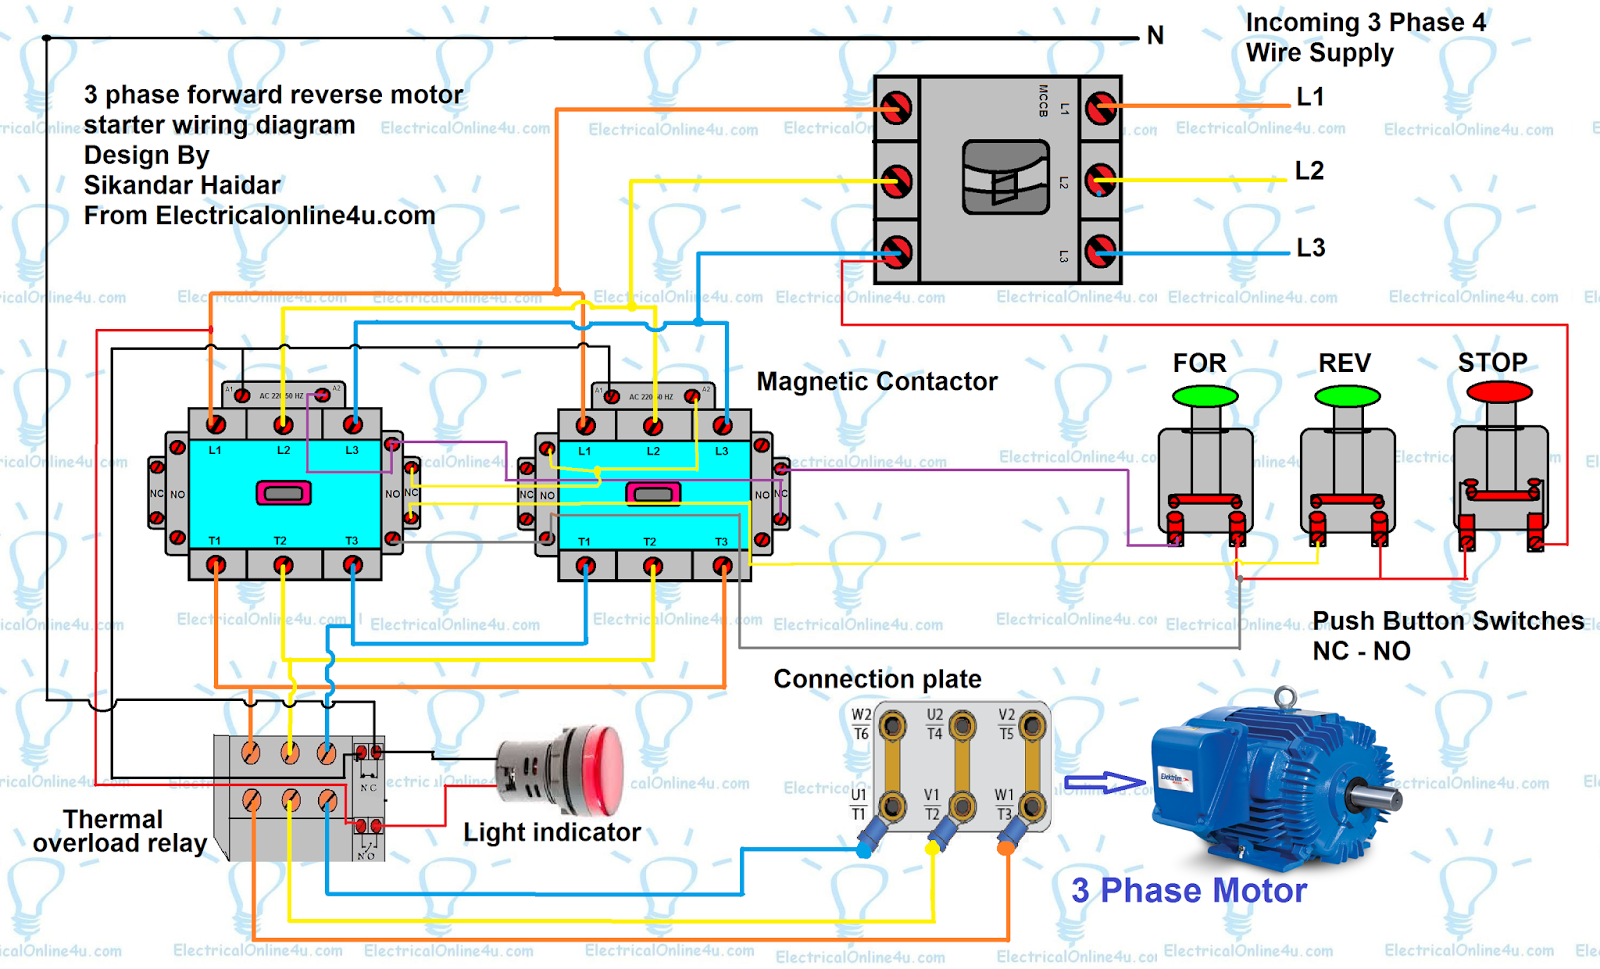 medium resolution of how to wire voltmeter in 3 phase wiring electrical online 4uwrg 4232 wire schematics 3 phase transformer with a motor with a how to wire voltmeter in 3